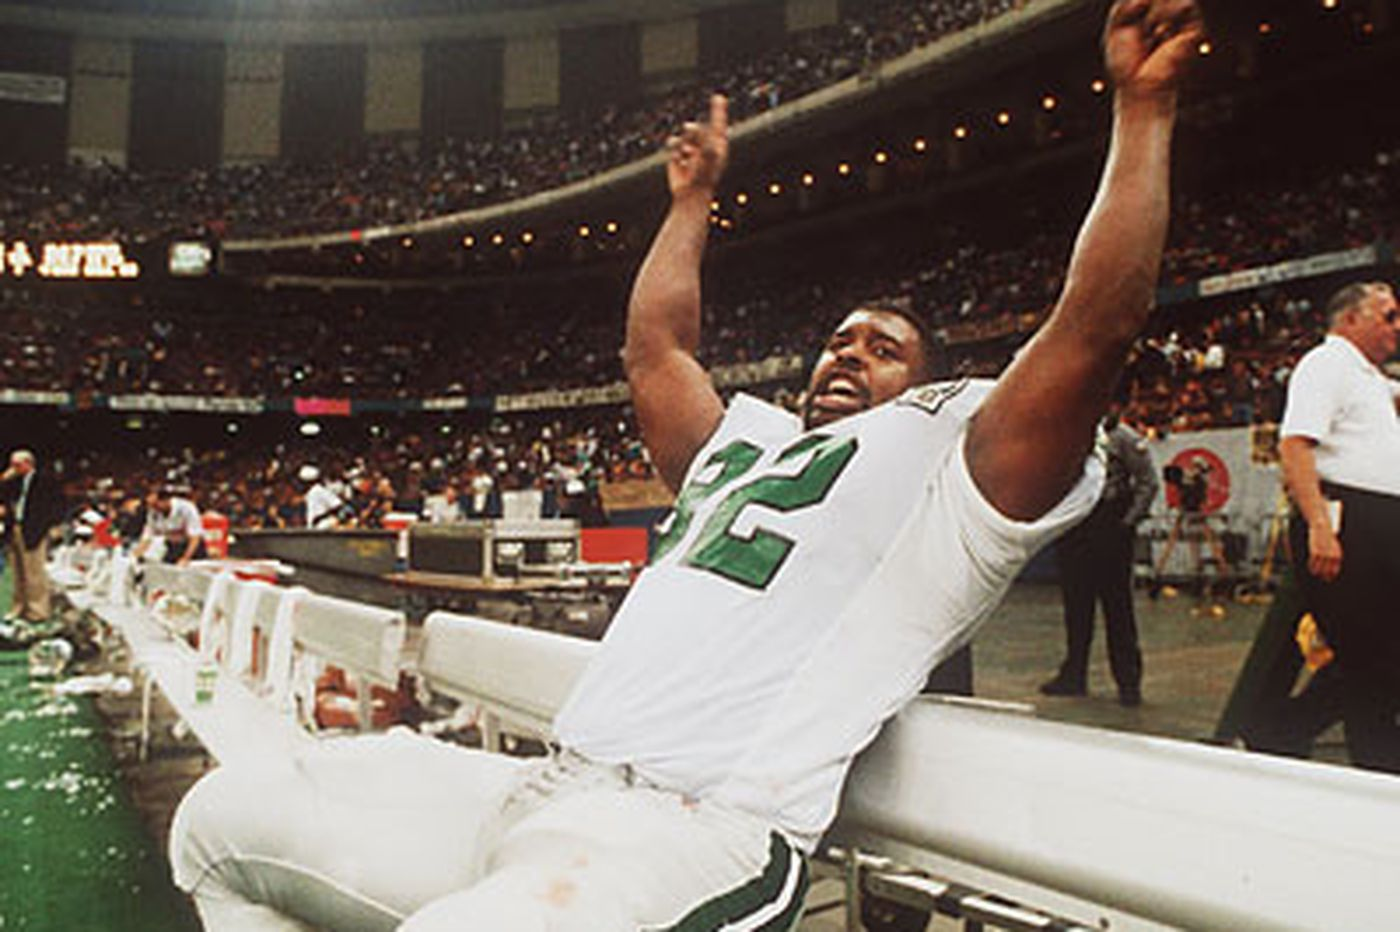 Eagles need another Reggie White